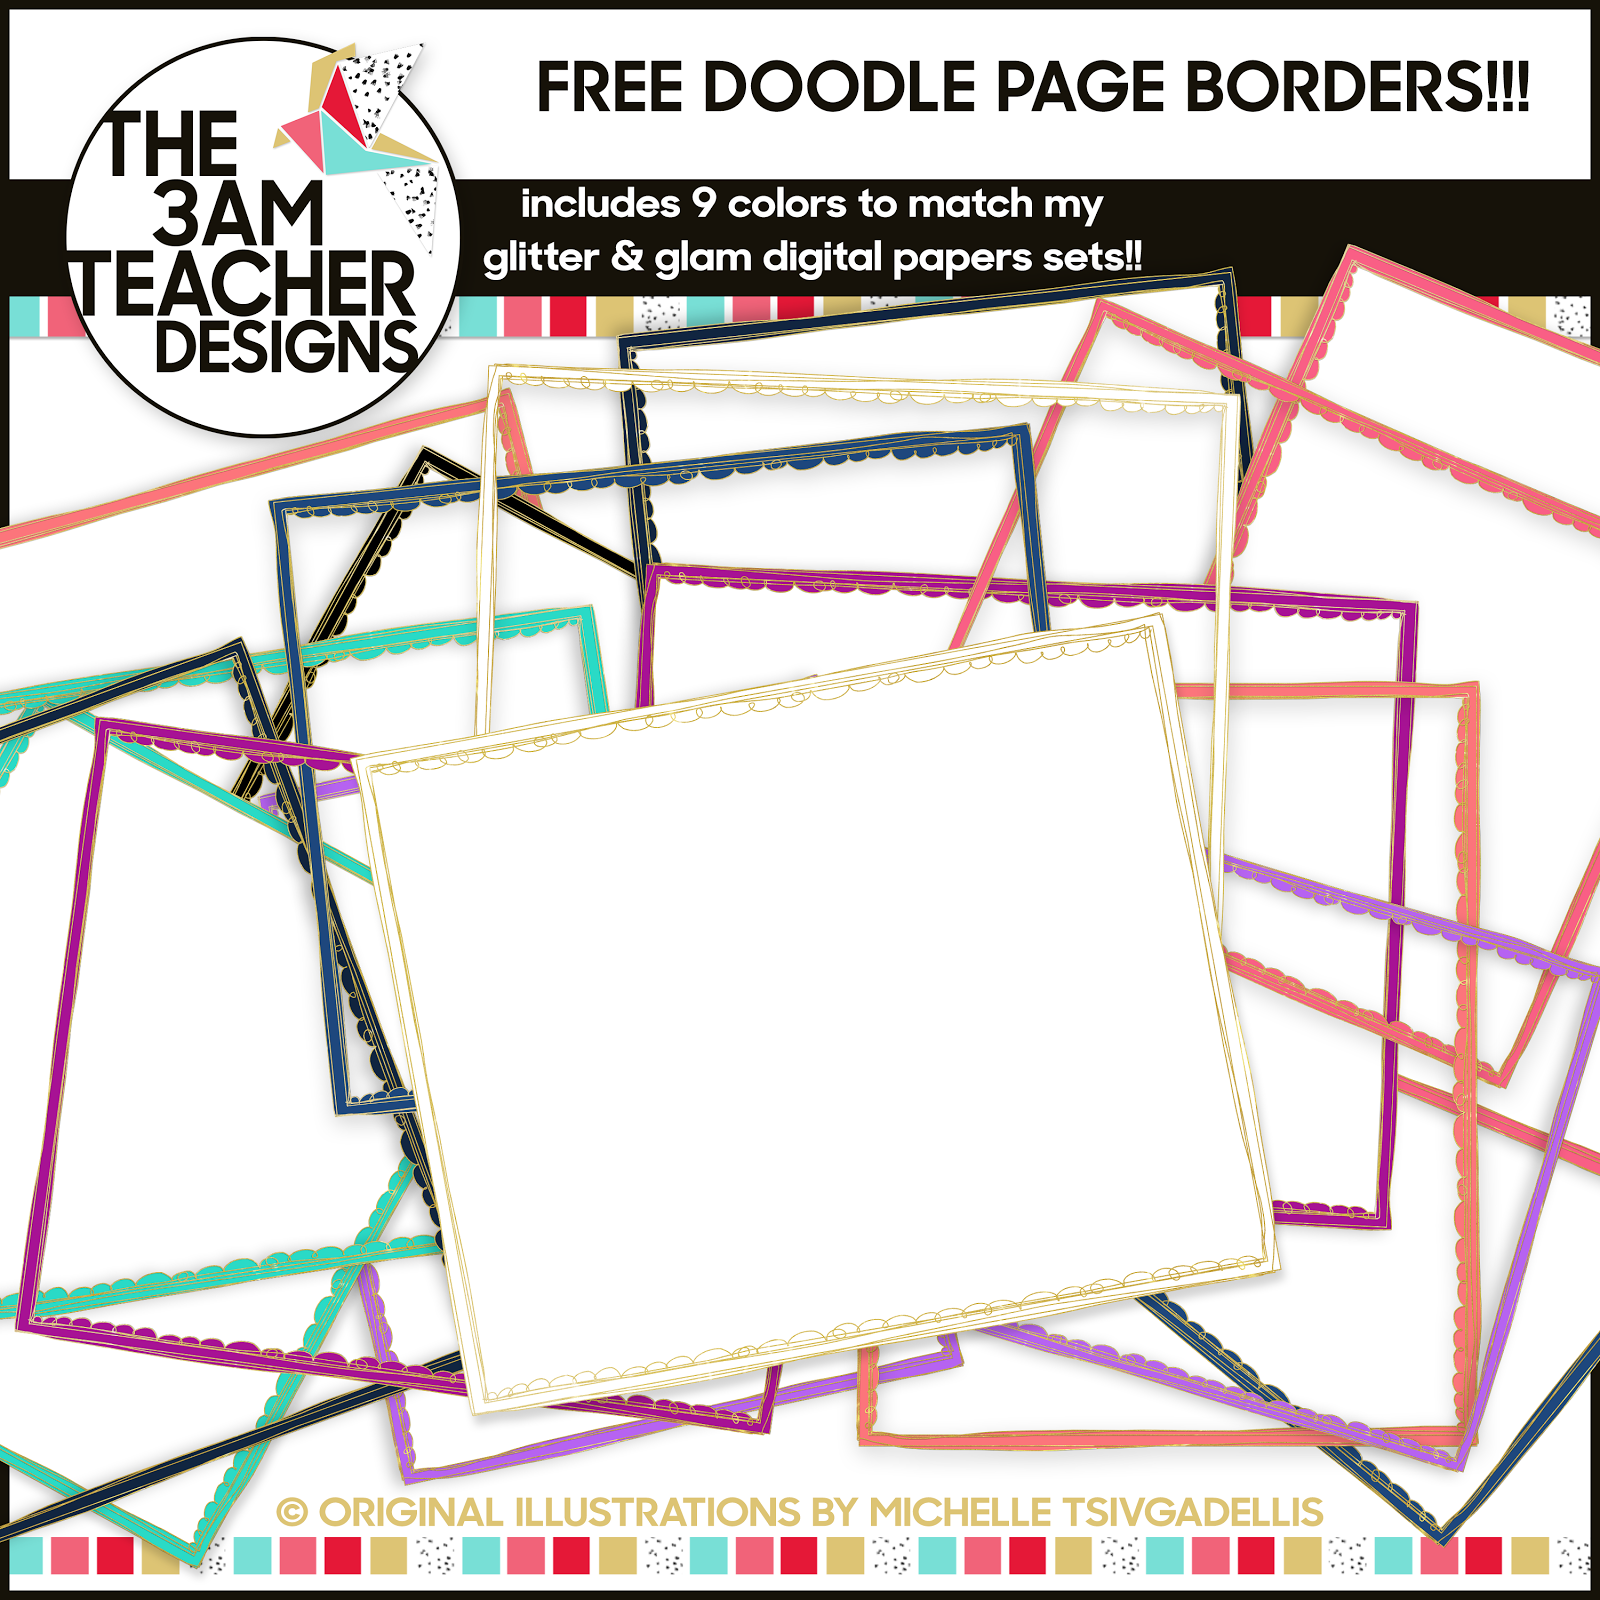 Free Doodle Page Borders